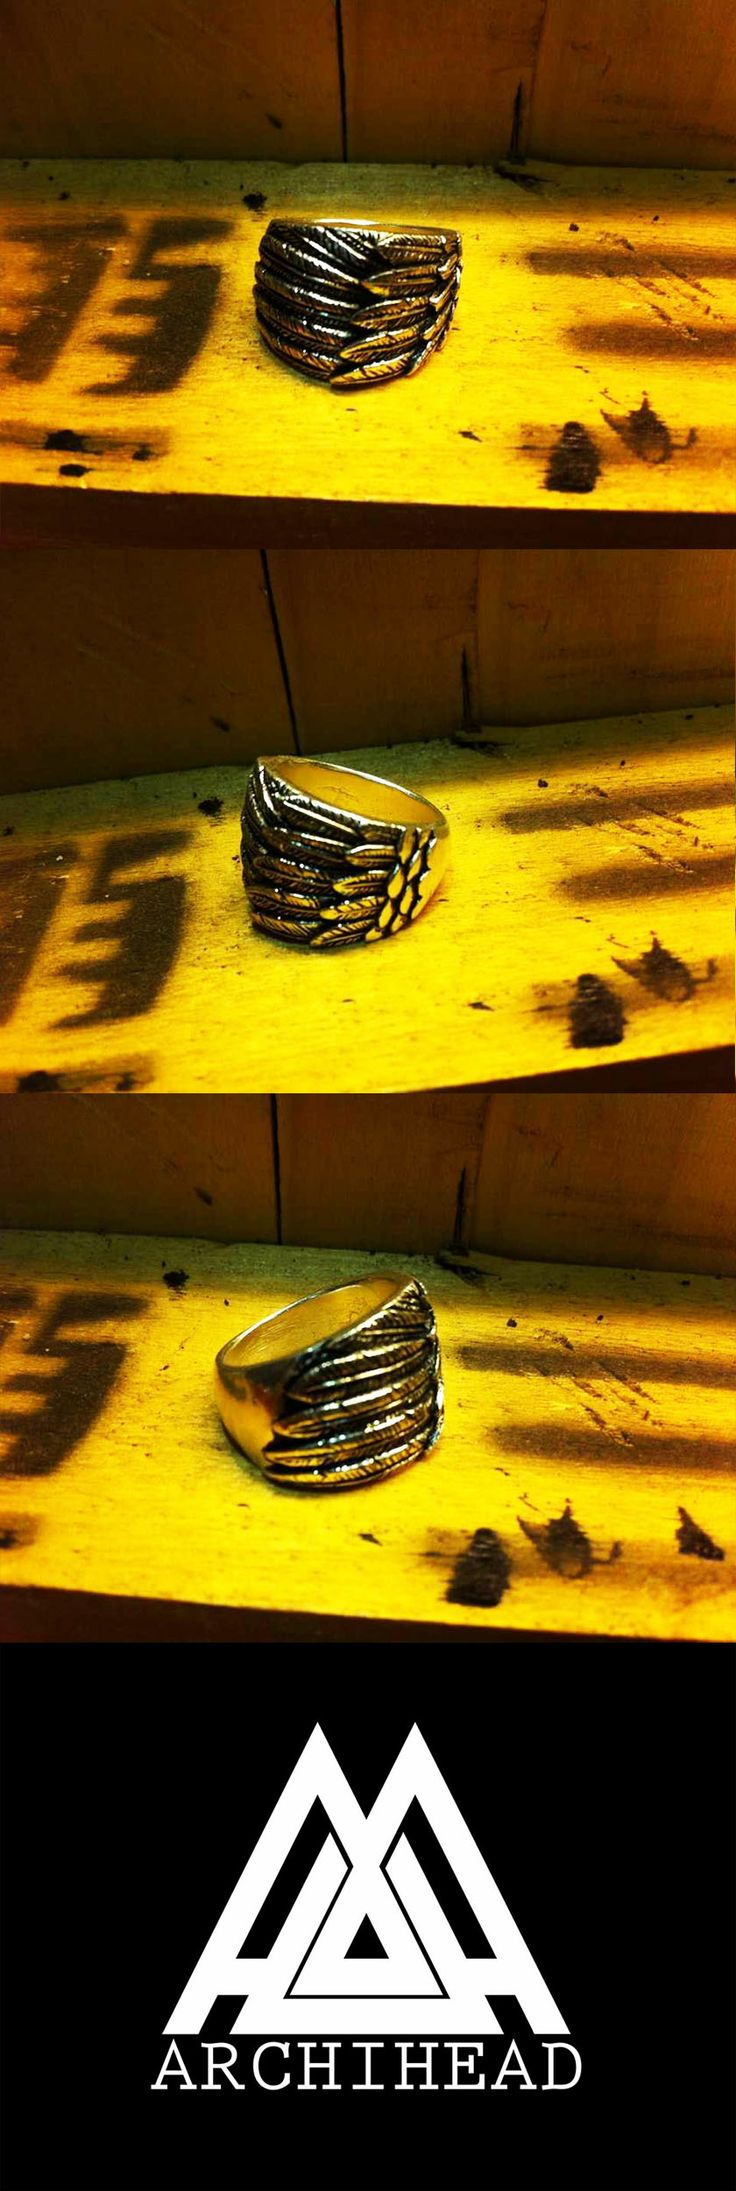 ARCHIHEAD Rings (wings) Archiheadproject@gmail.com